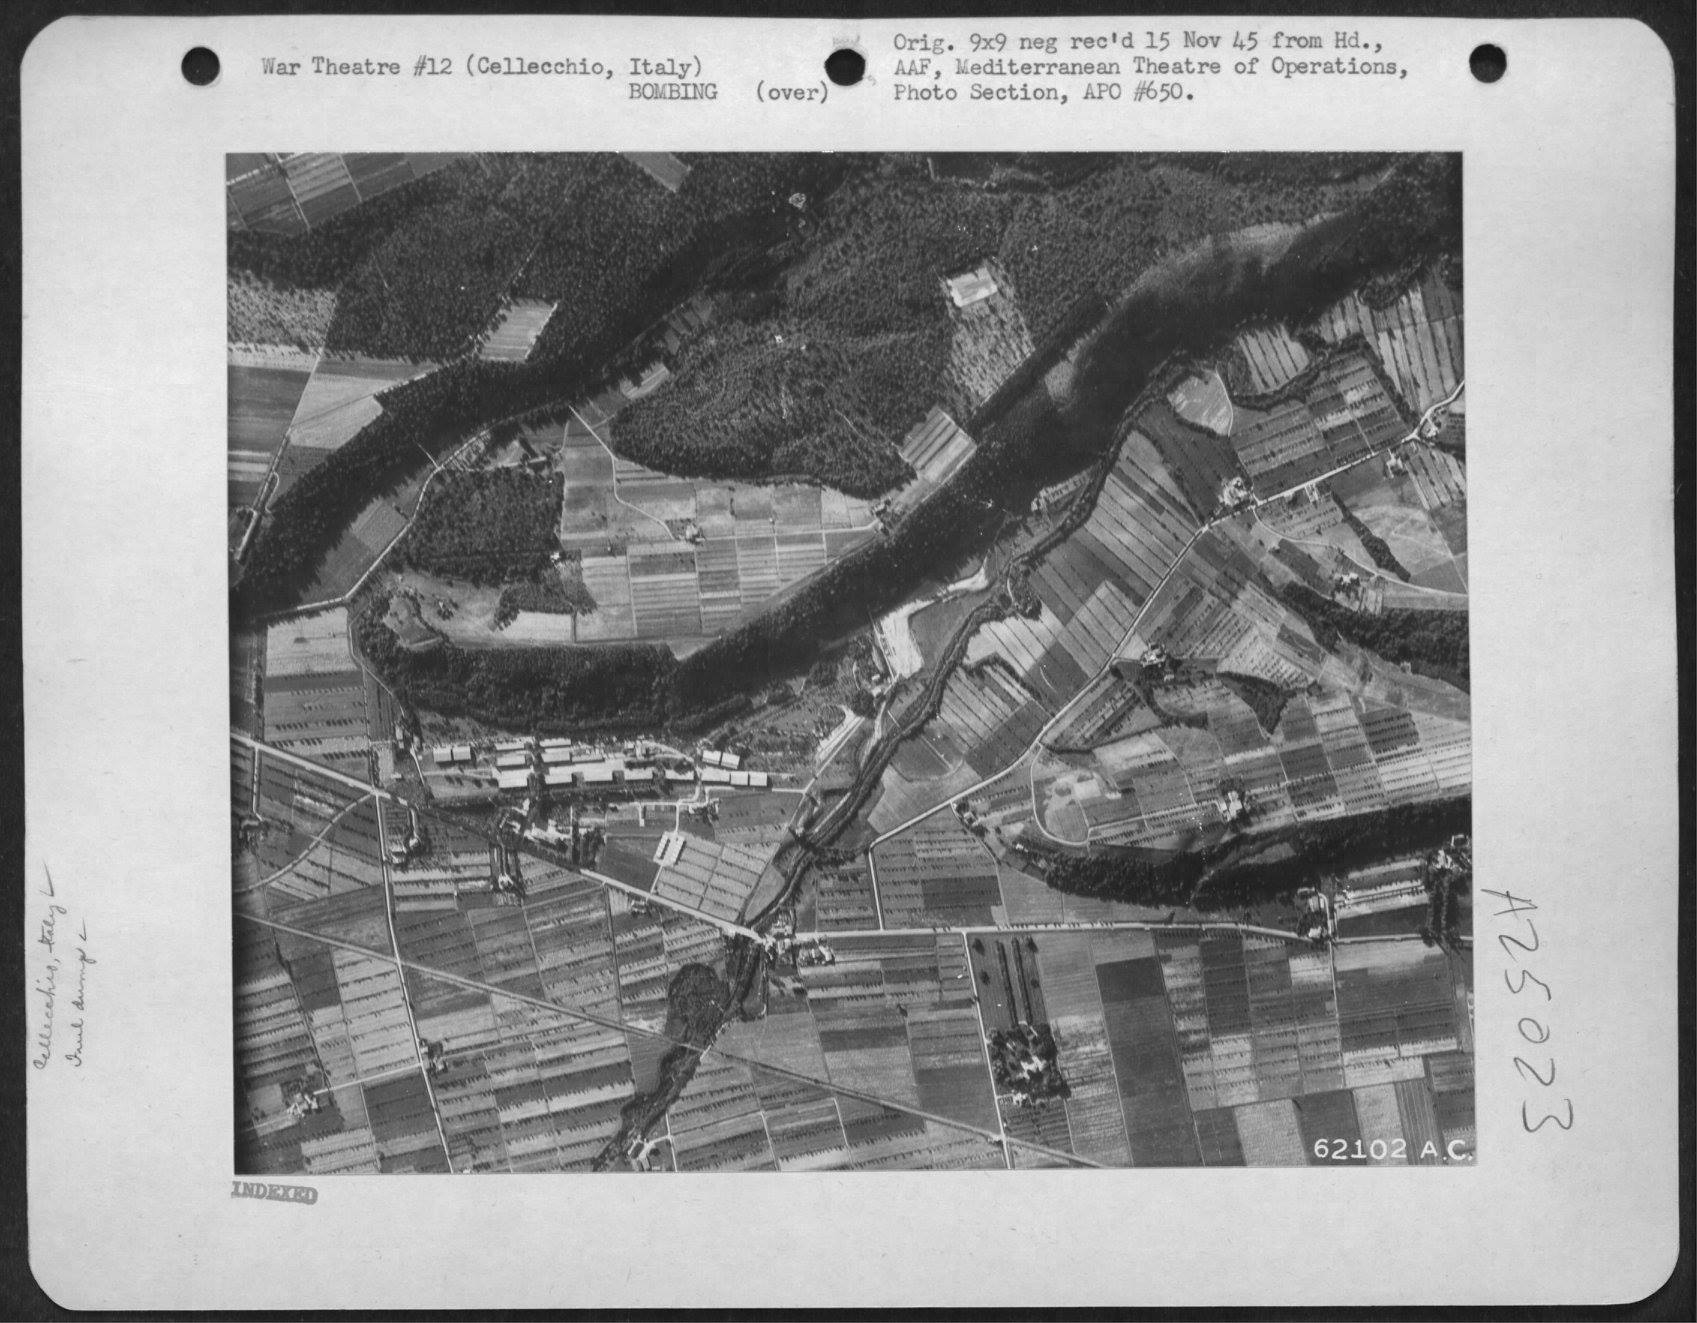 USAAF B 26 Marauders with pin point accuracy hit the Storage Dumps nr Cellecchio Italy 7 Jul 1944 01